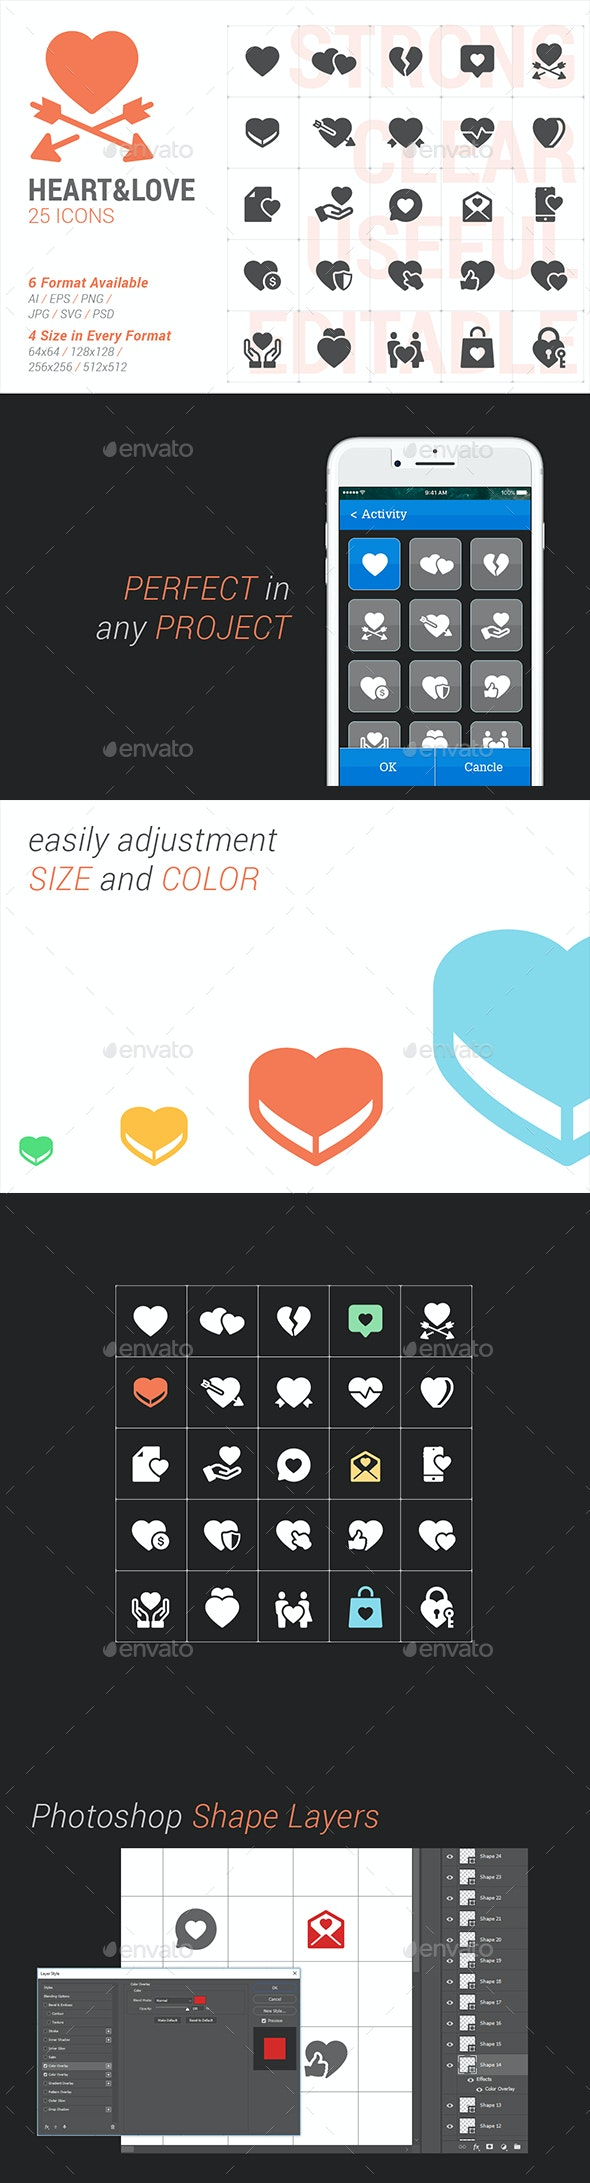 Heart & Love Filled Icon - Objects Icons